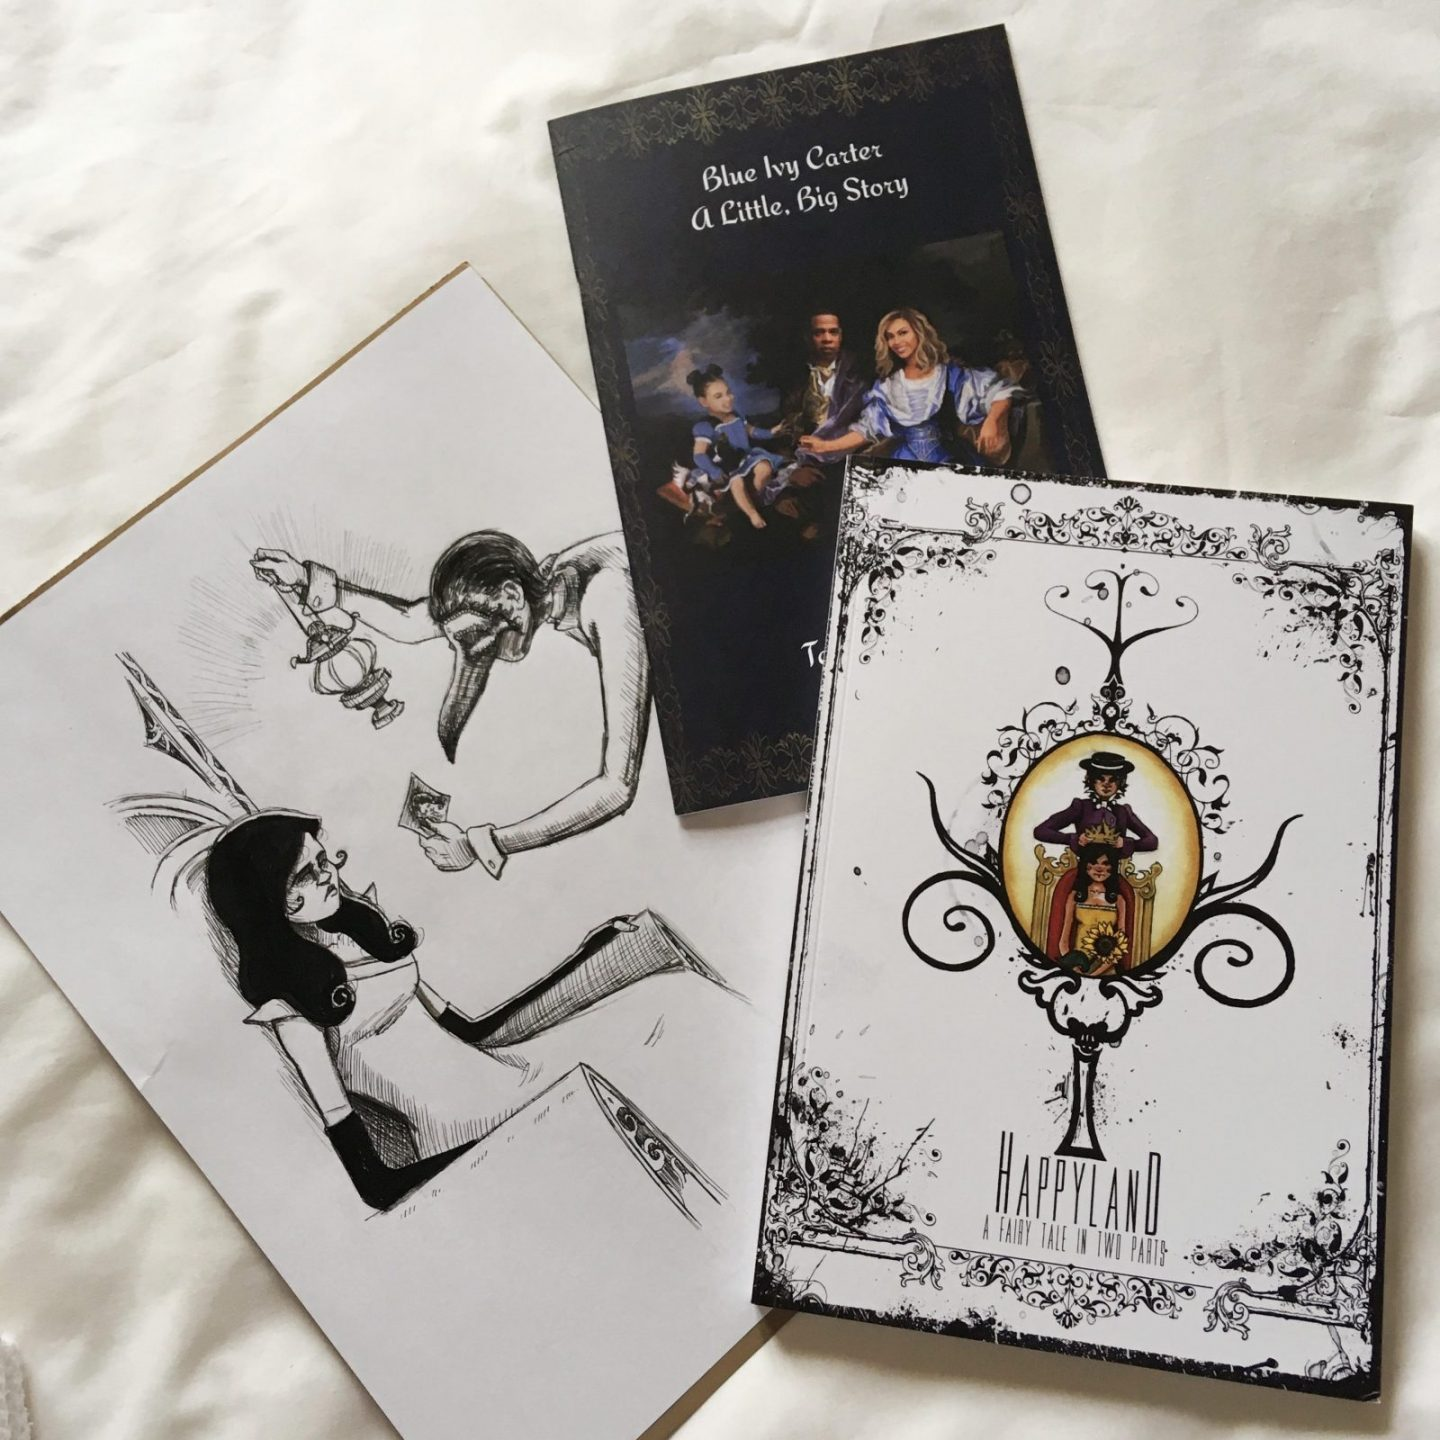 copy of Happyland, Blue Ivy Carter, and original illustration from book